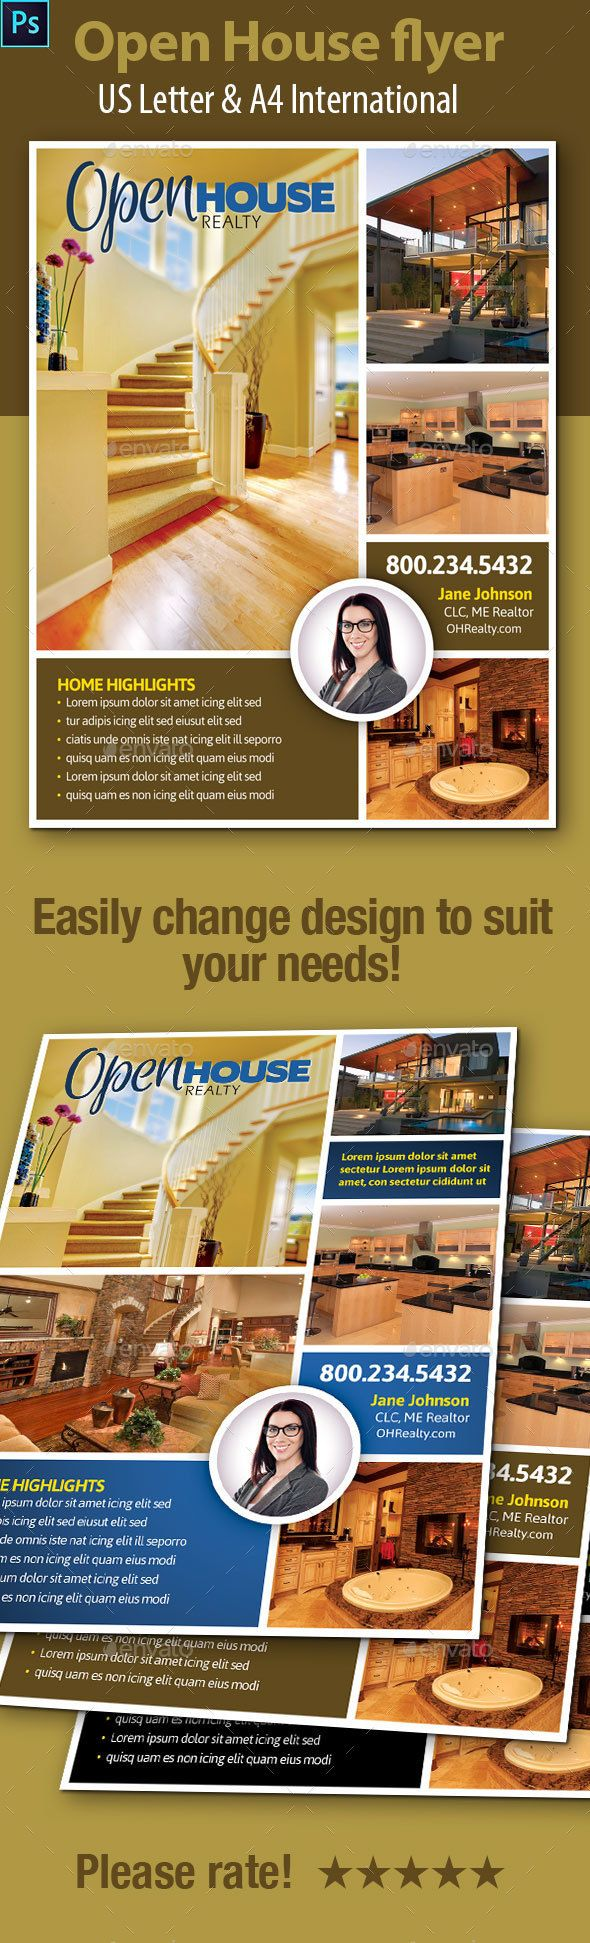 17 best images about real estate flyer business open house flyers